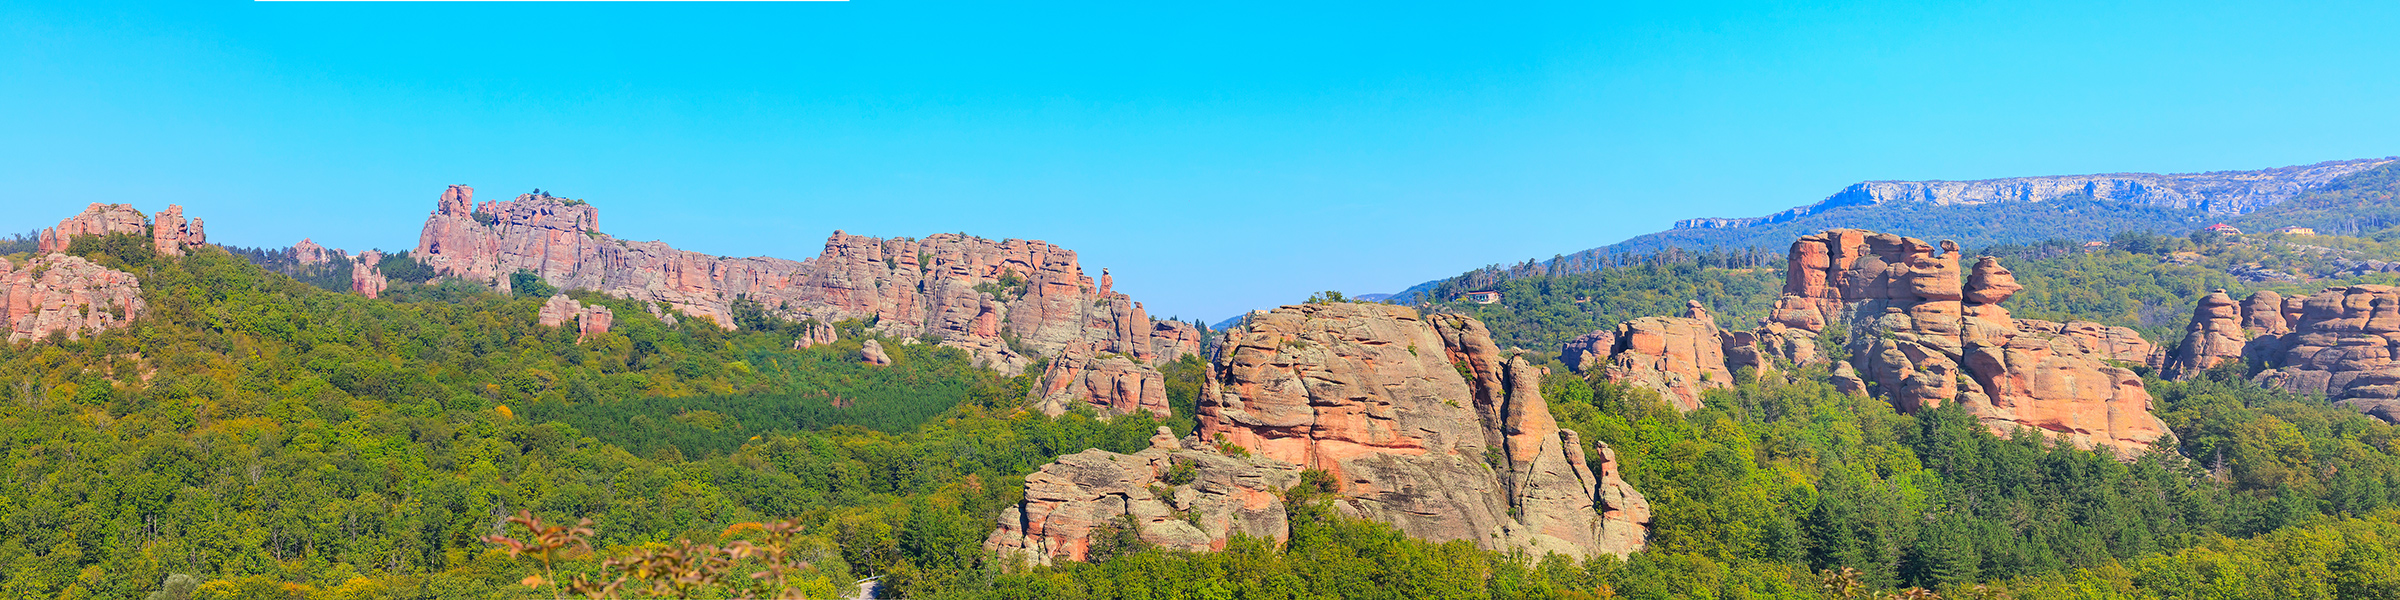 Bulgaria Belogradchik Rocks